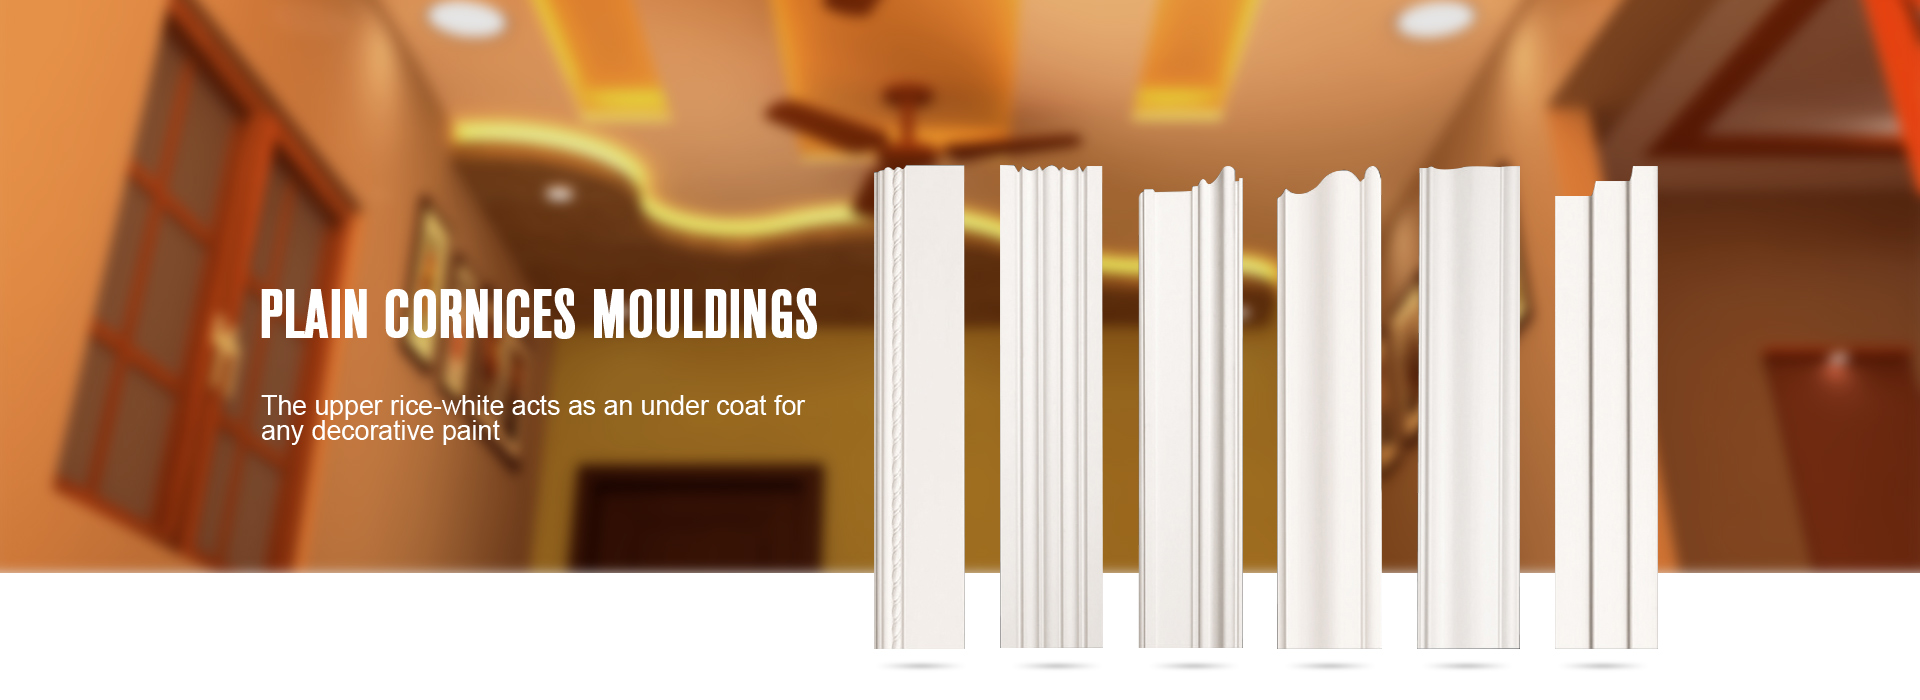 tiaj-cornices-mouldings